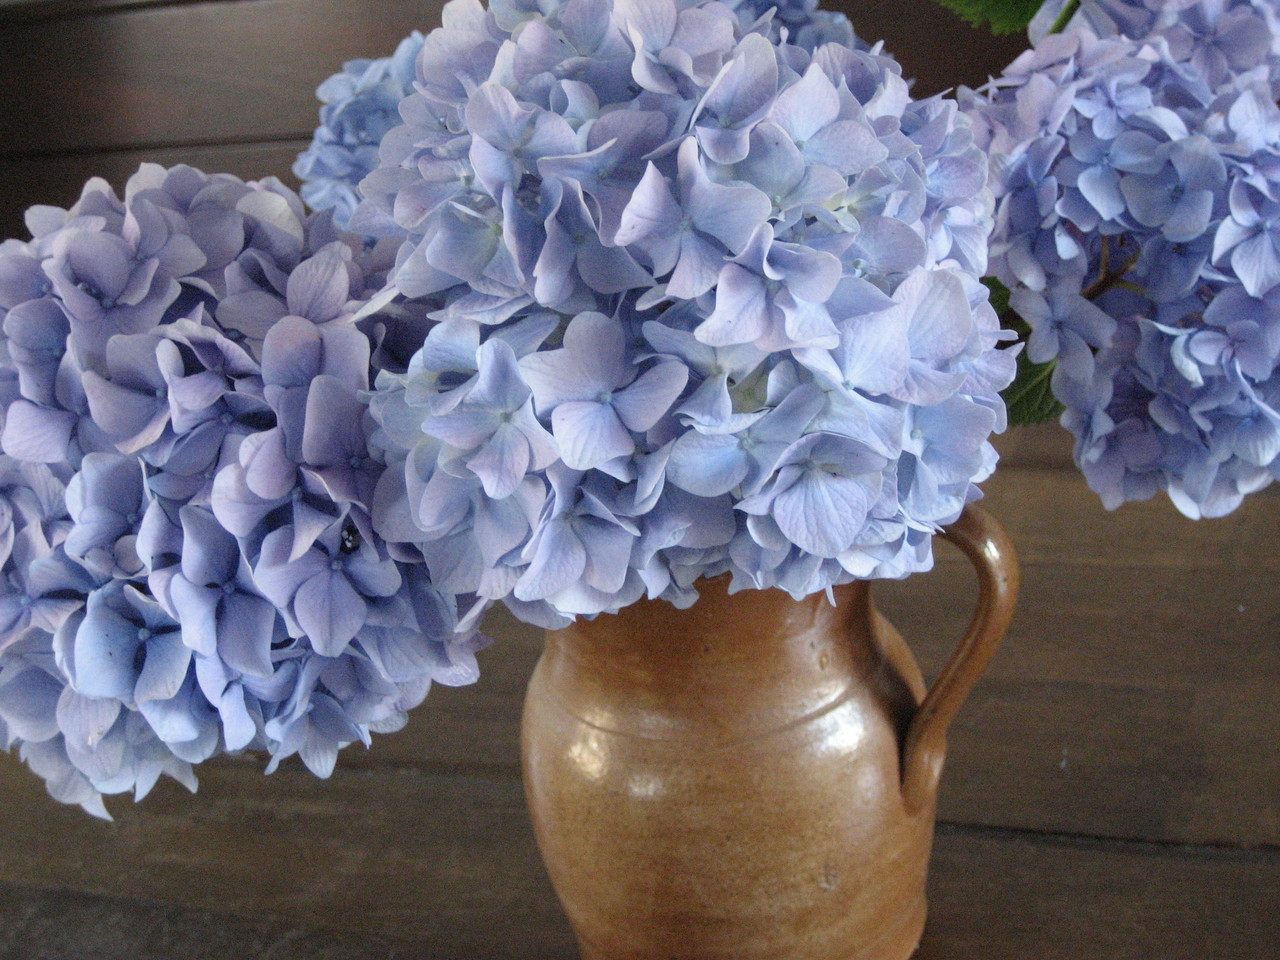 How to perk up drooping hydrangeas